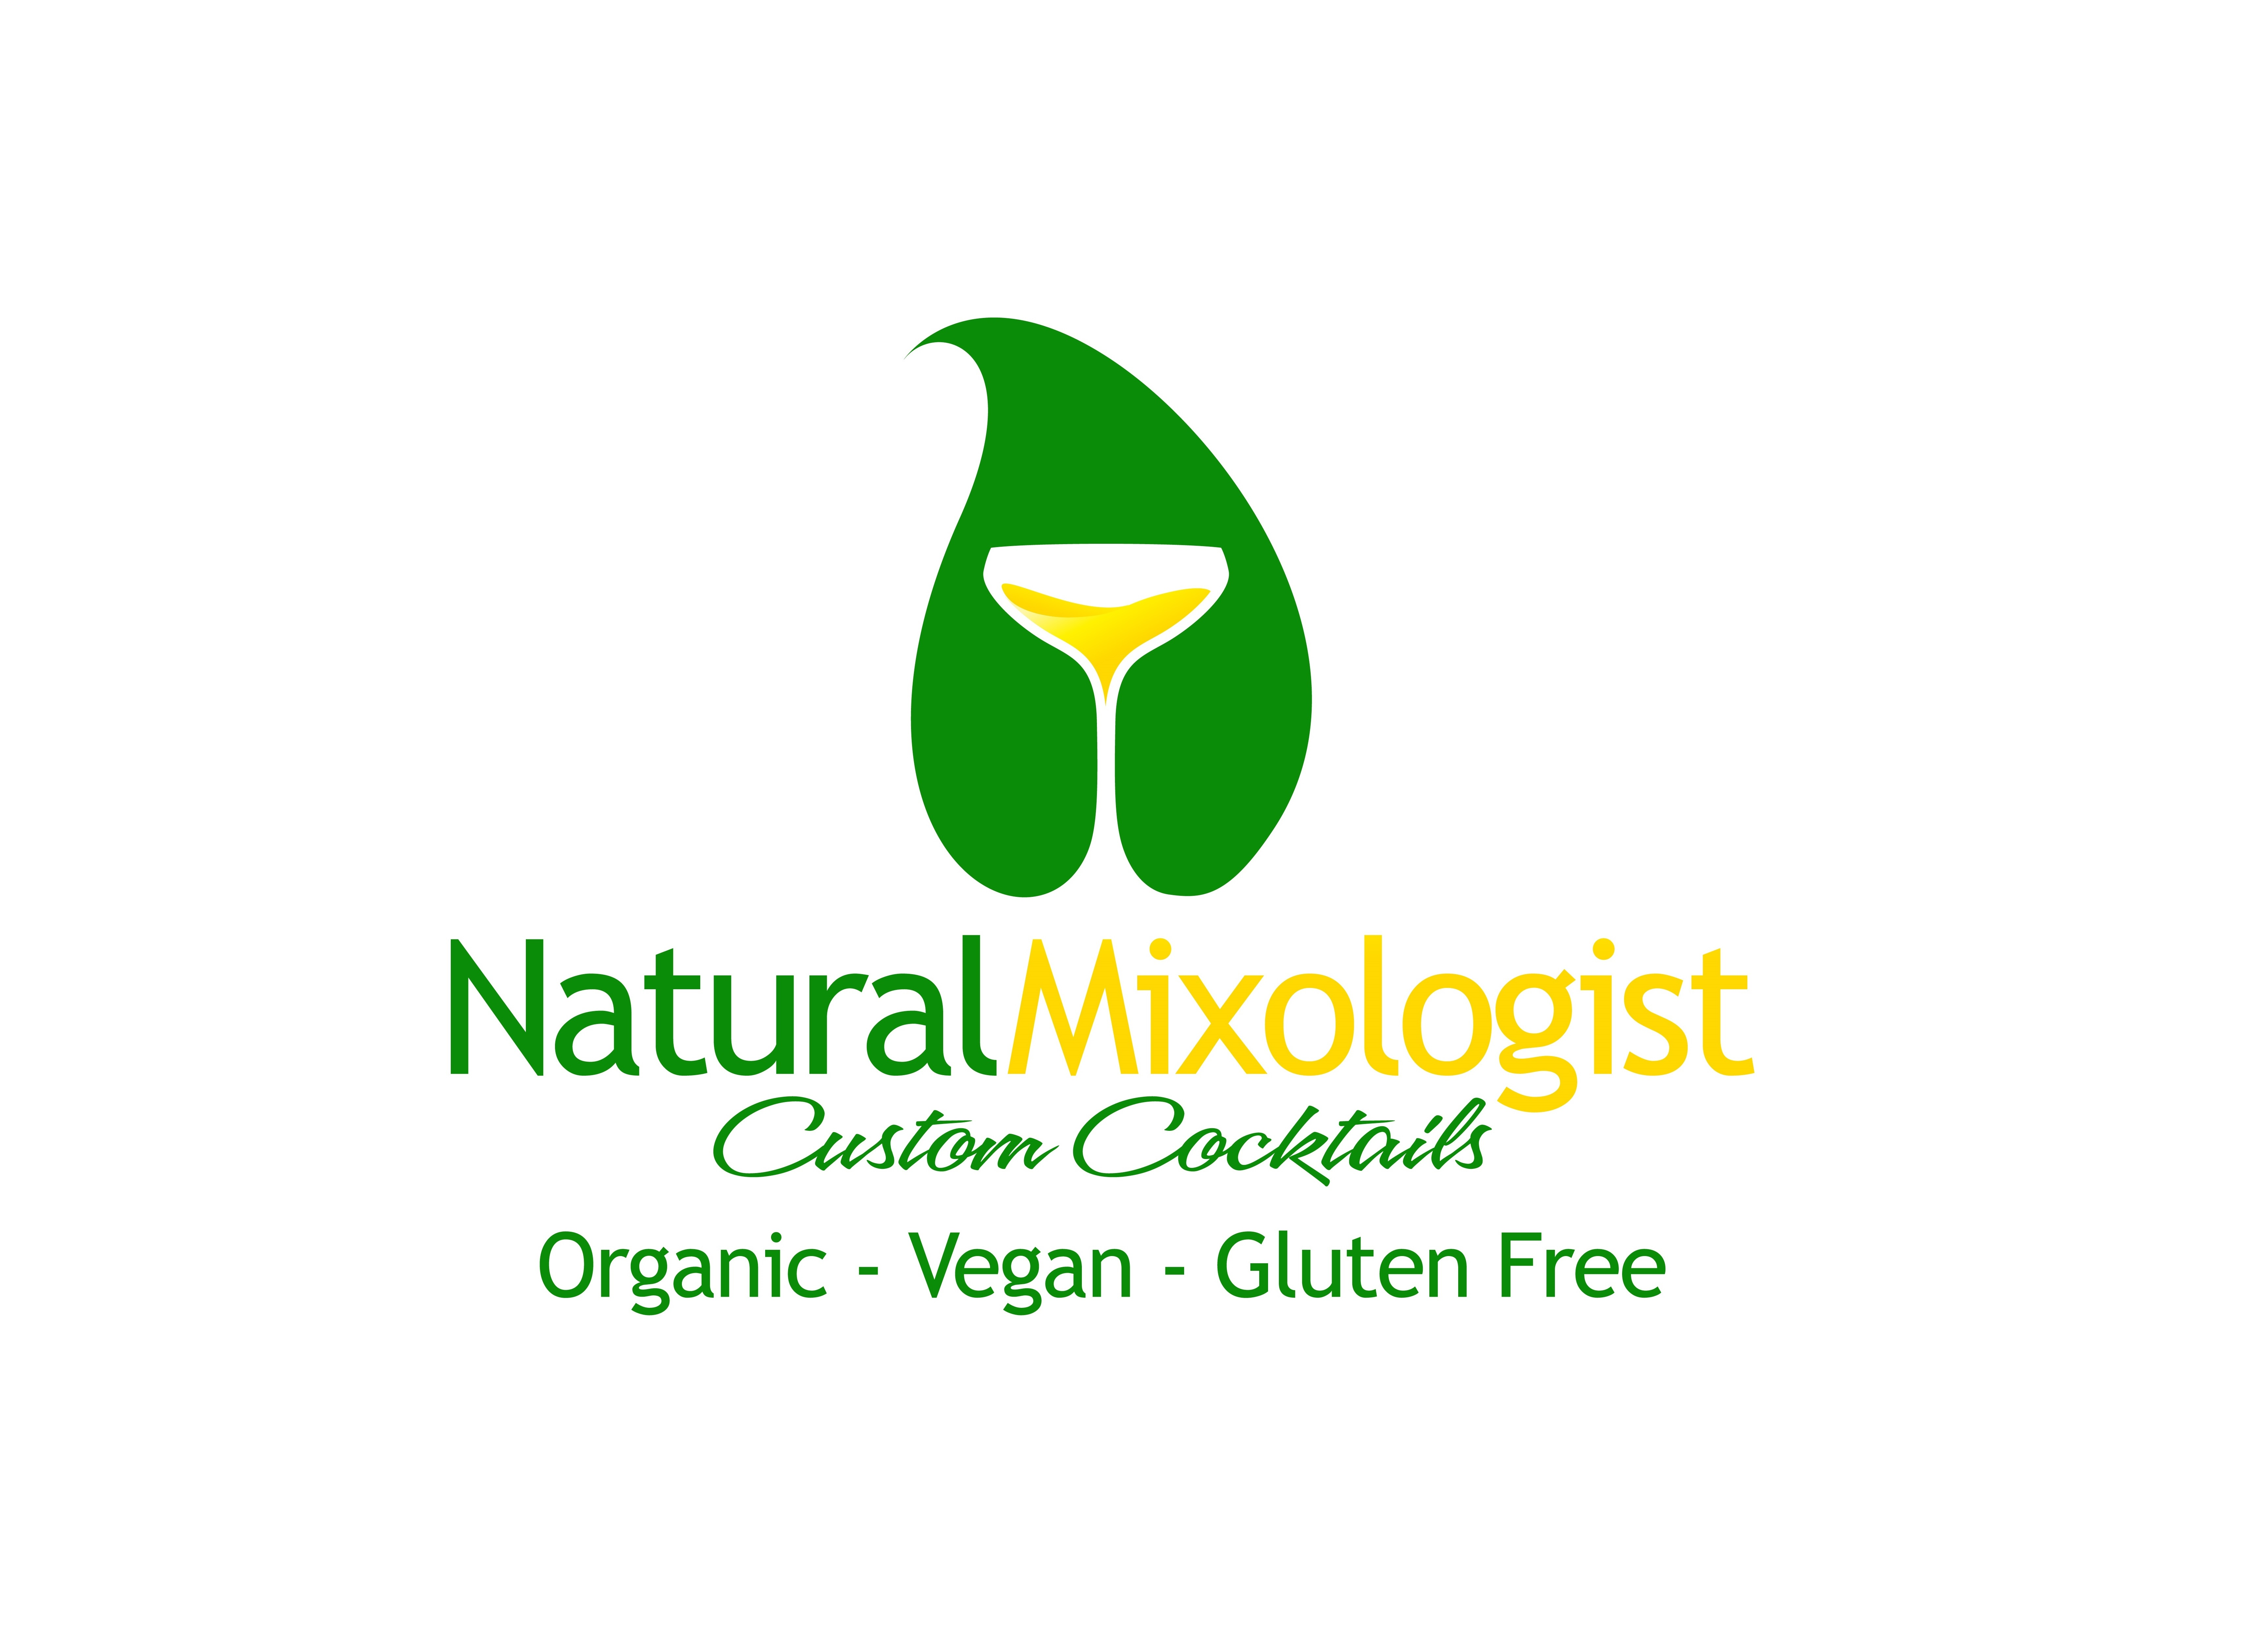 The Natural Mixologist - The Natural Mixologist